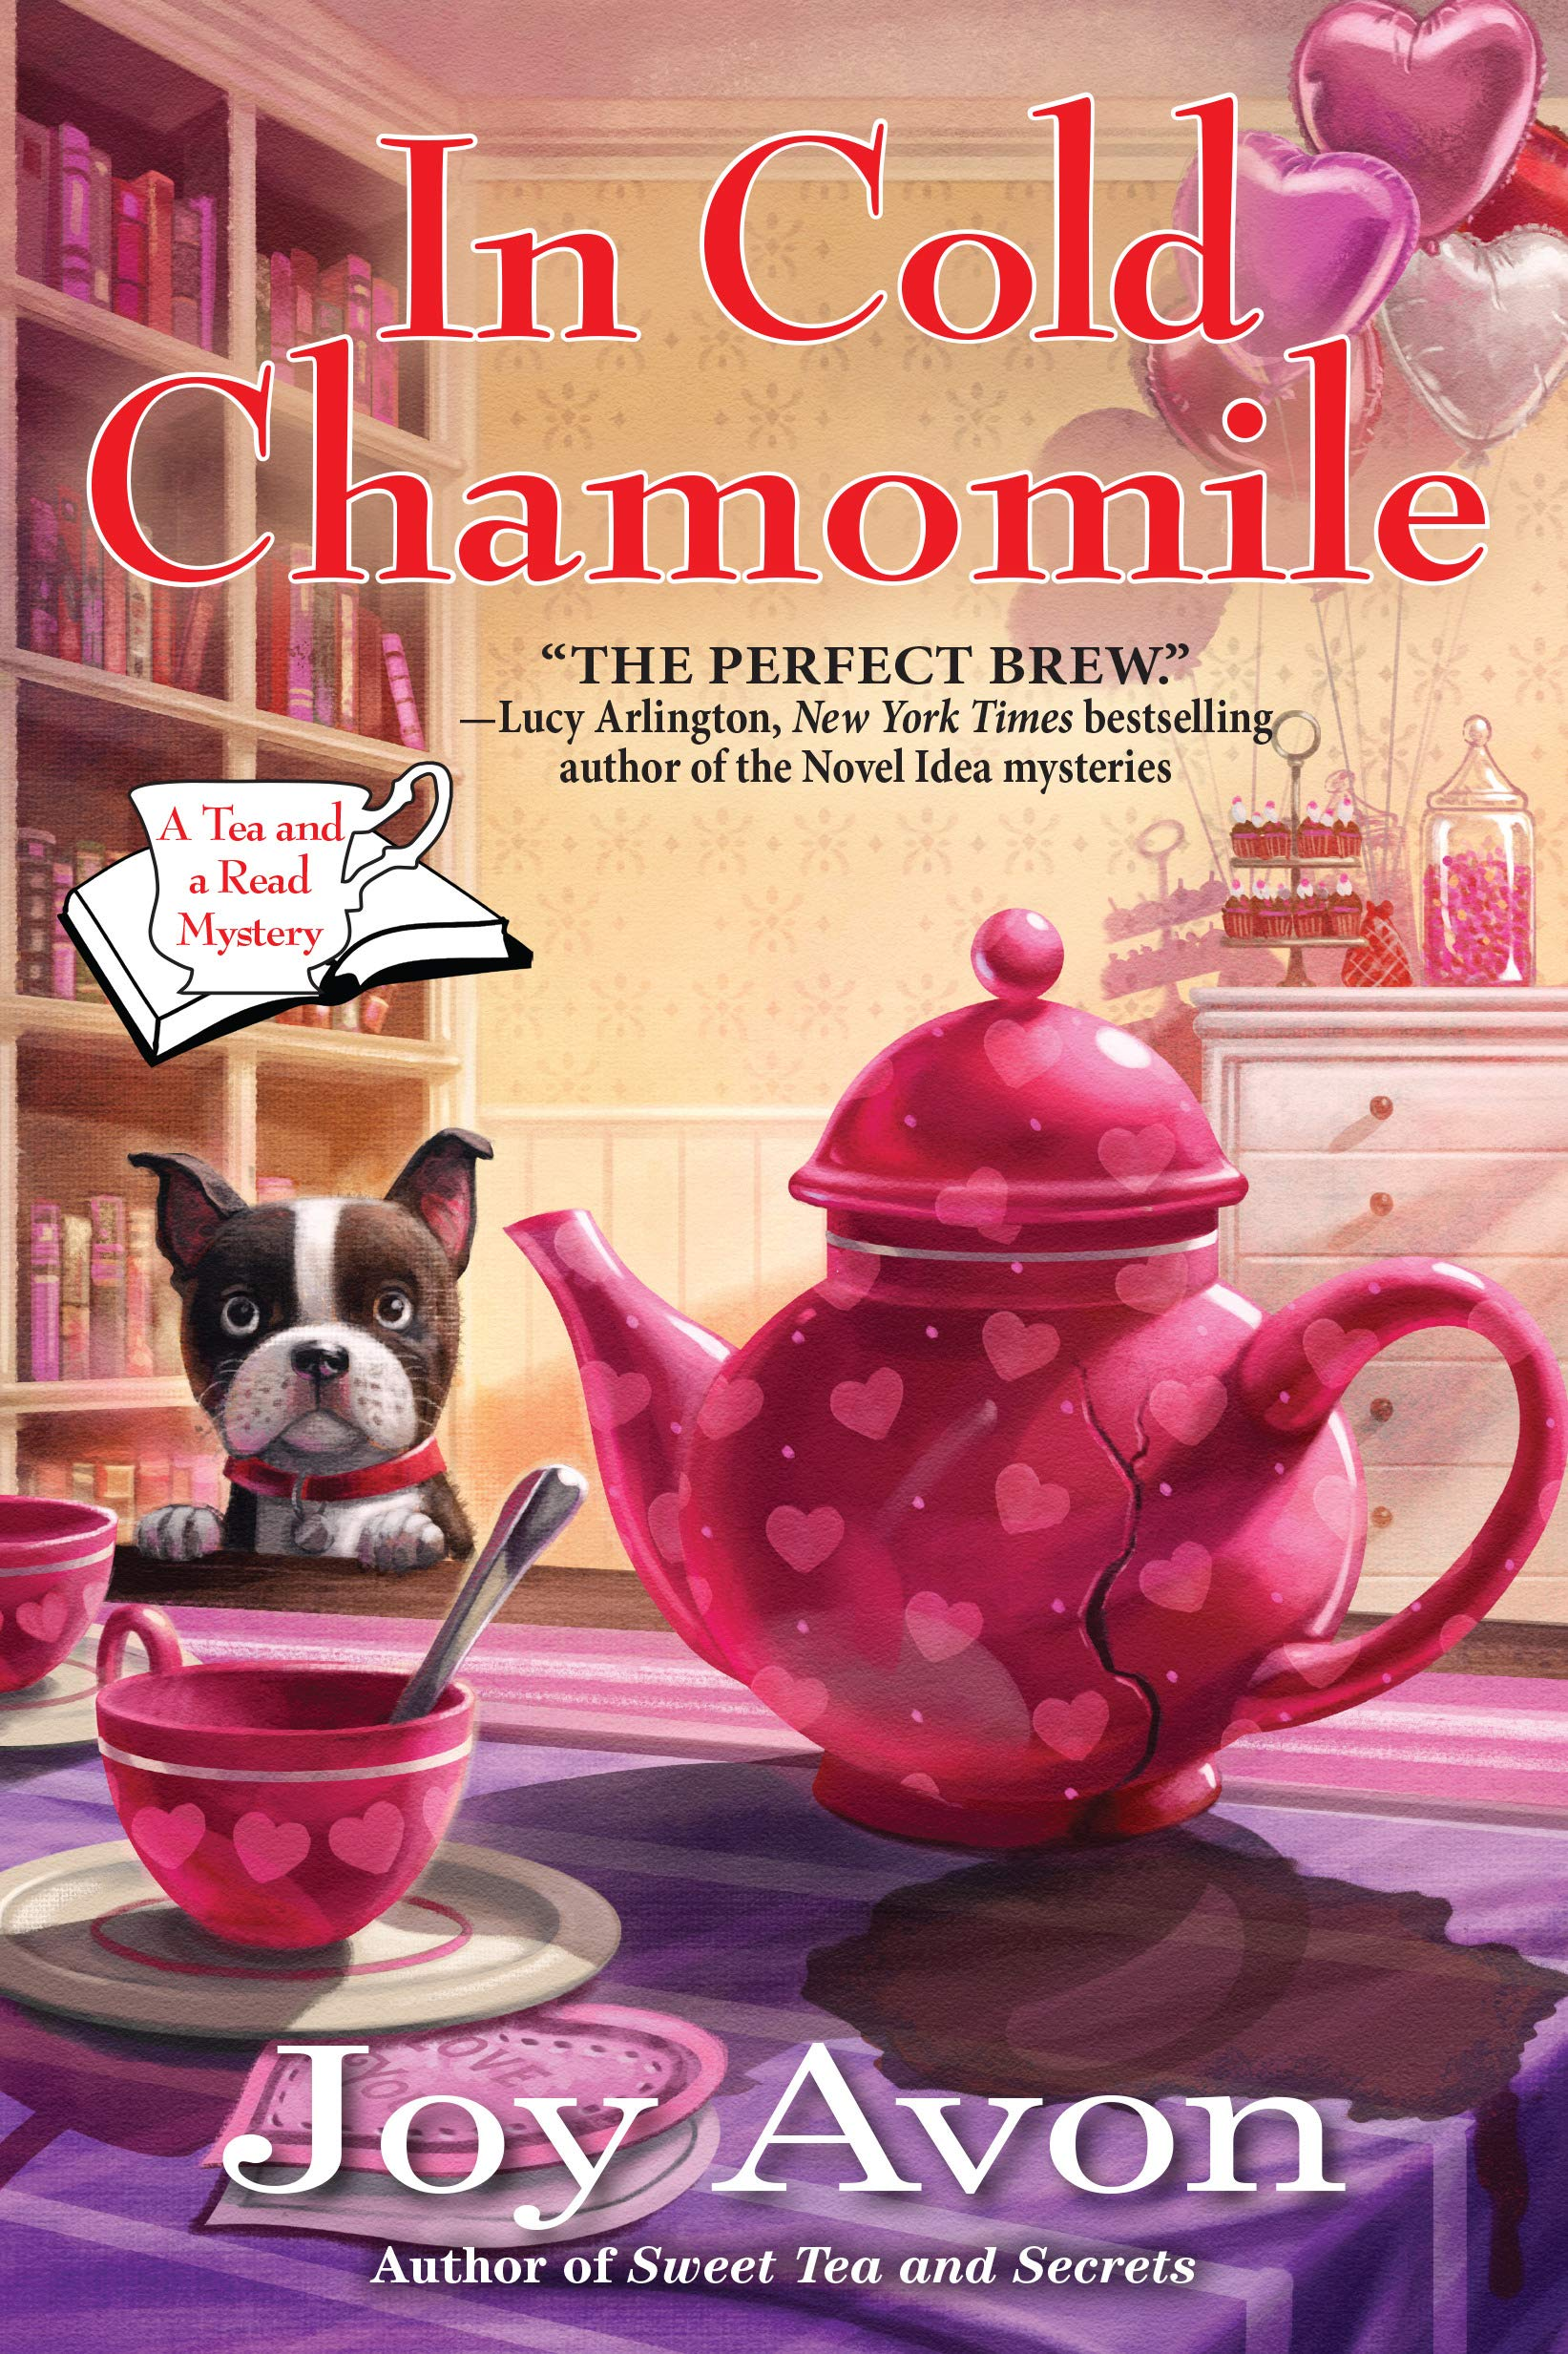 In Cold Chamomile: A Tea and a Read Mystery